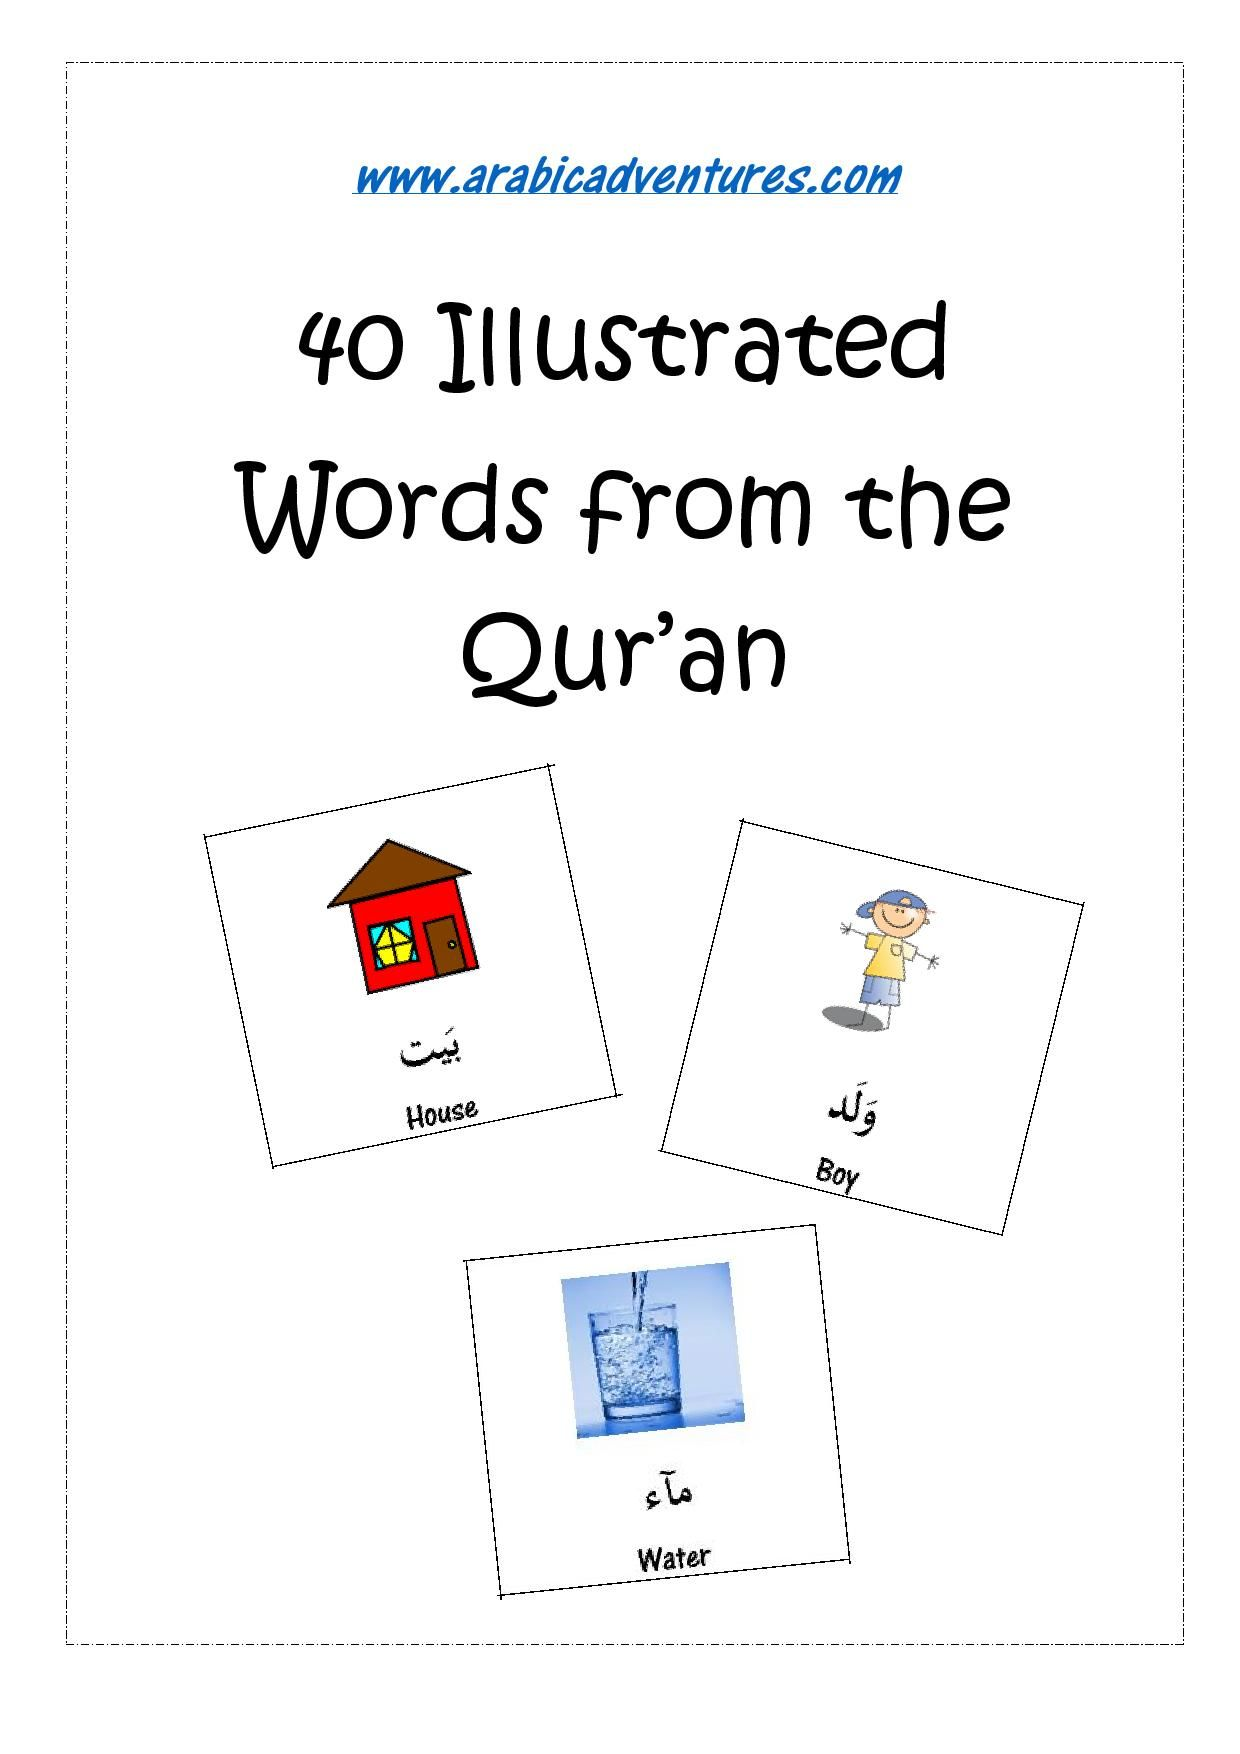 Bismillah Here Is A For 40 Illustrated Nouns From The